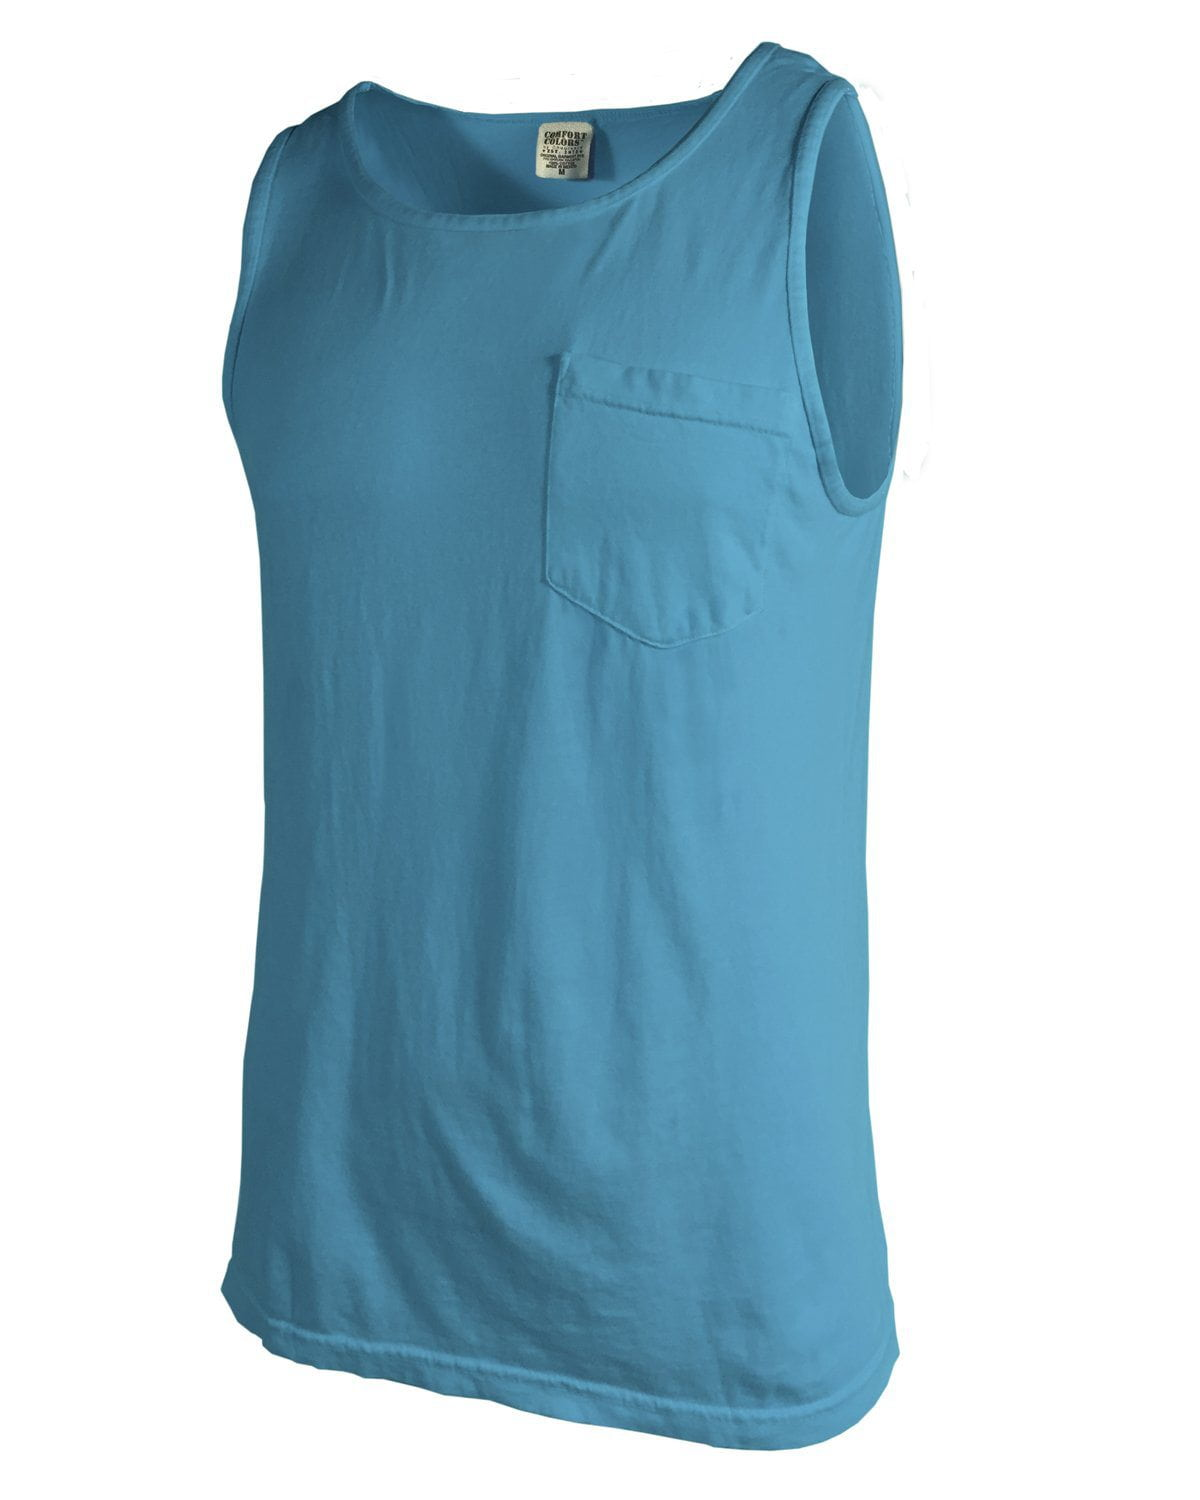 331890abf2 Lilly Circle Monogrammed Comfort Colors Tank Top Pocket, ladies, Comfort  Colors, - Sunny